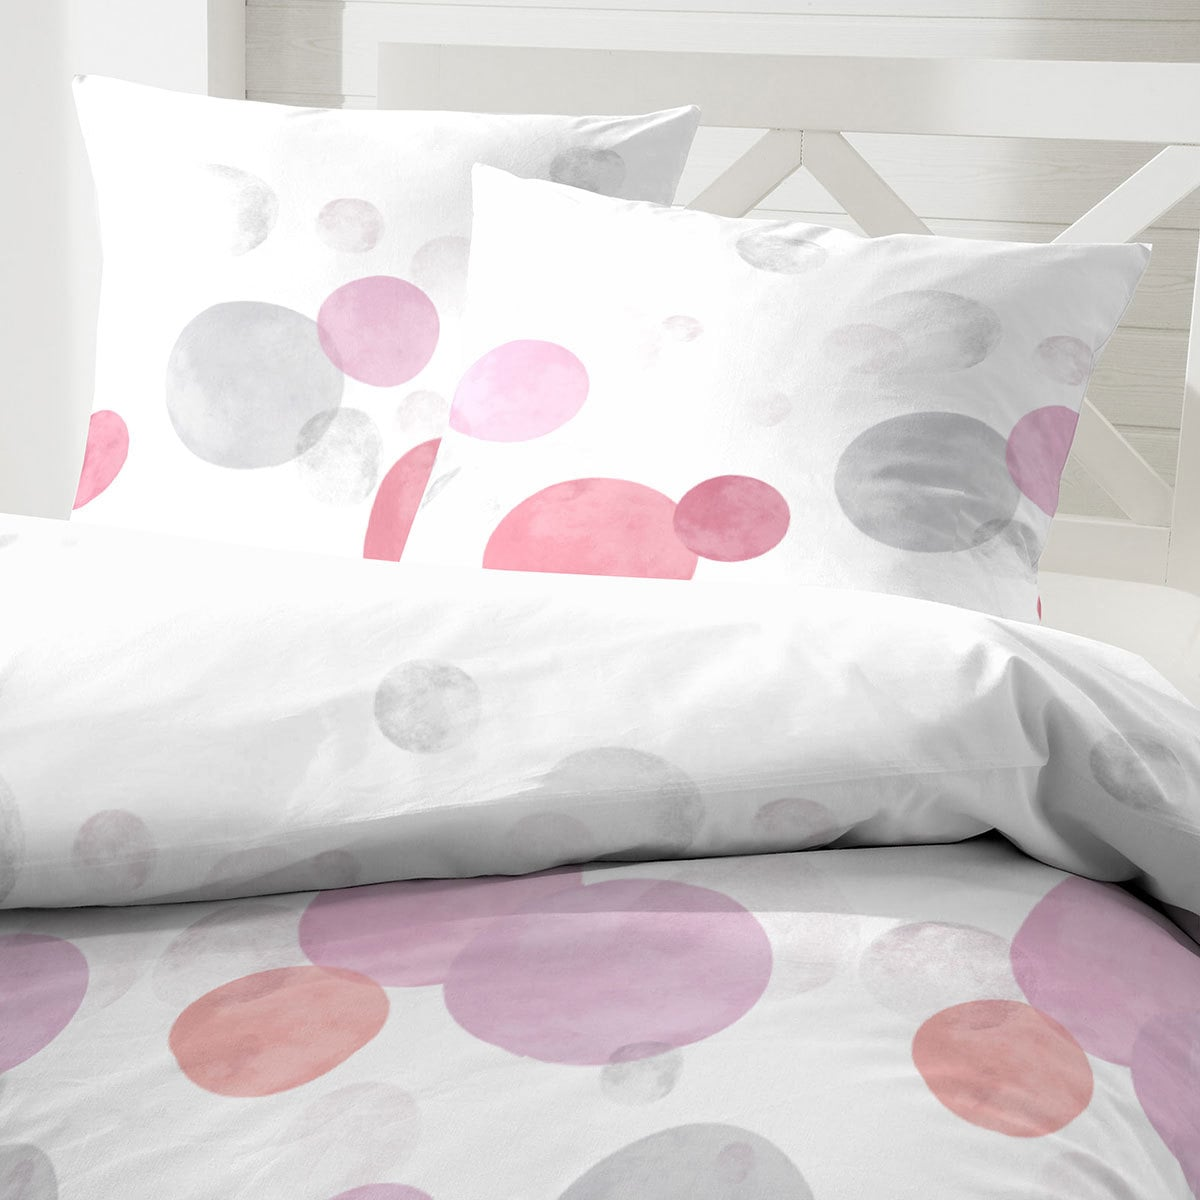 enrico coss bettw sche ballon pink g nstig online kaufen bei bettwaren shop. Black Bedroom Furniture Sets. Home Design Ideas